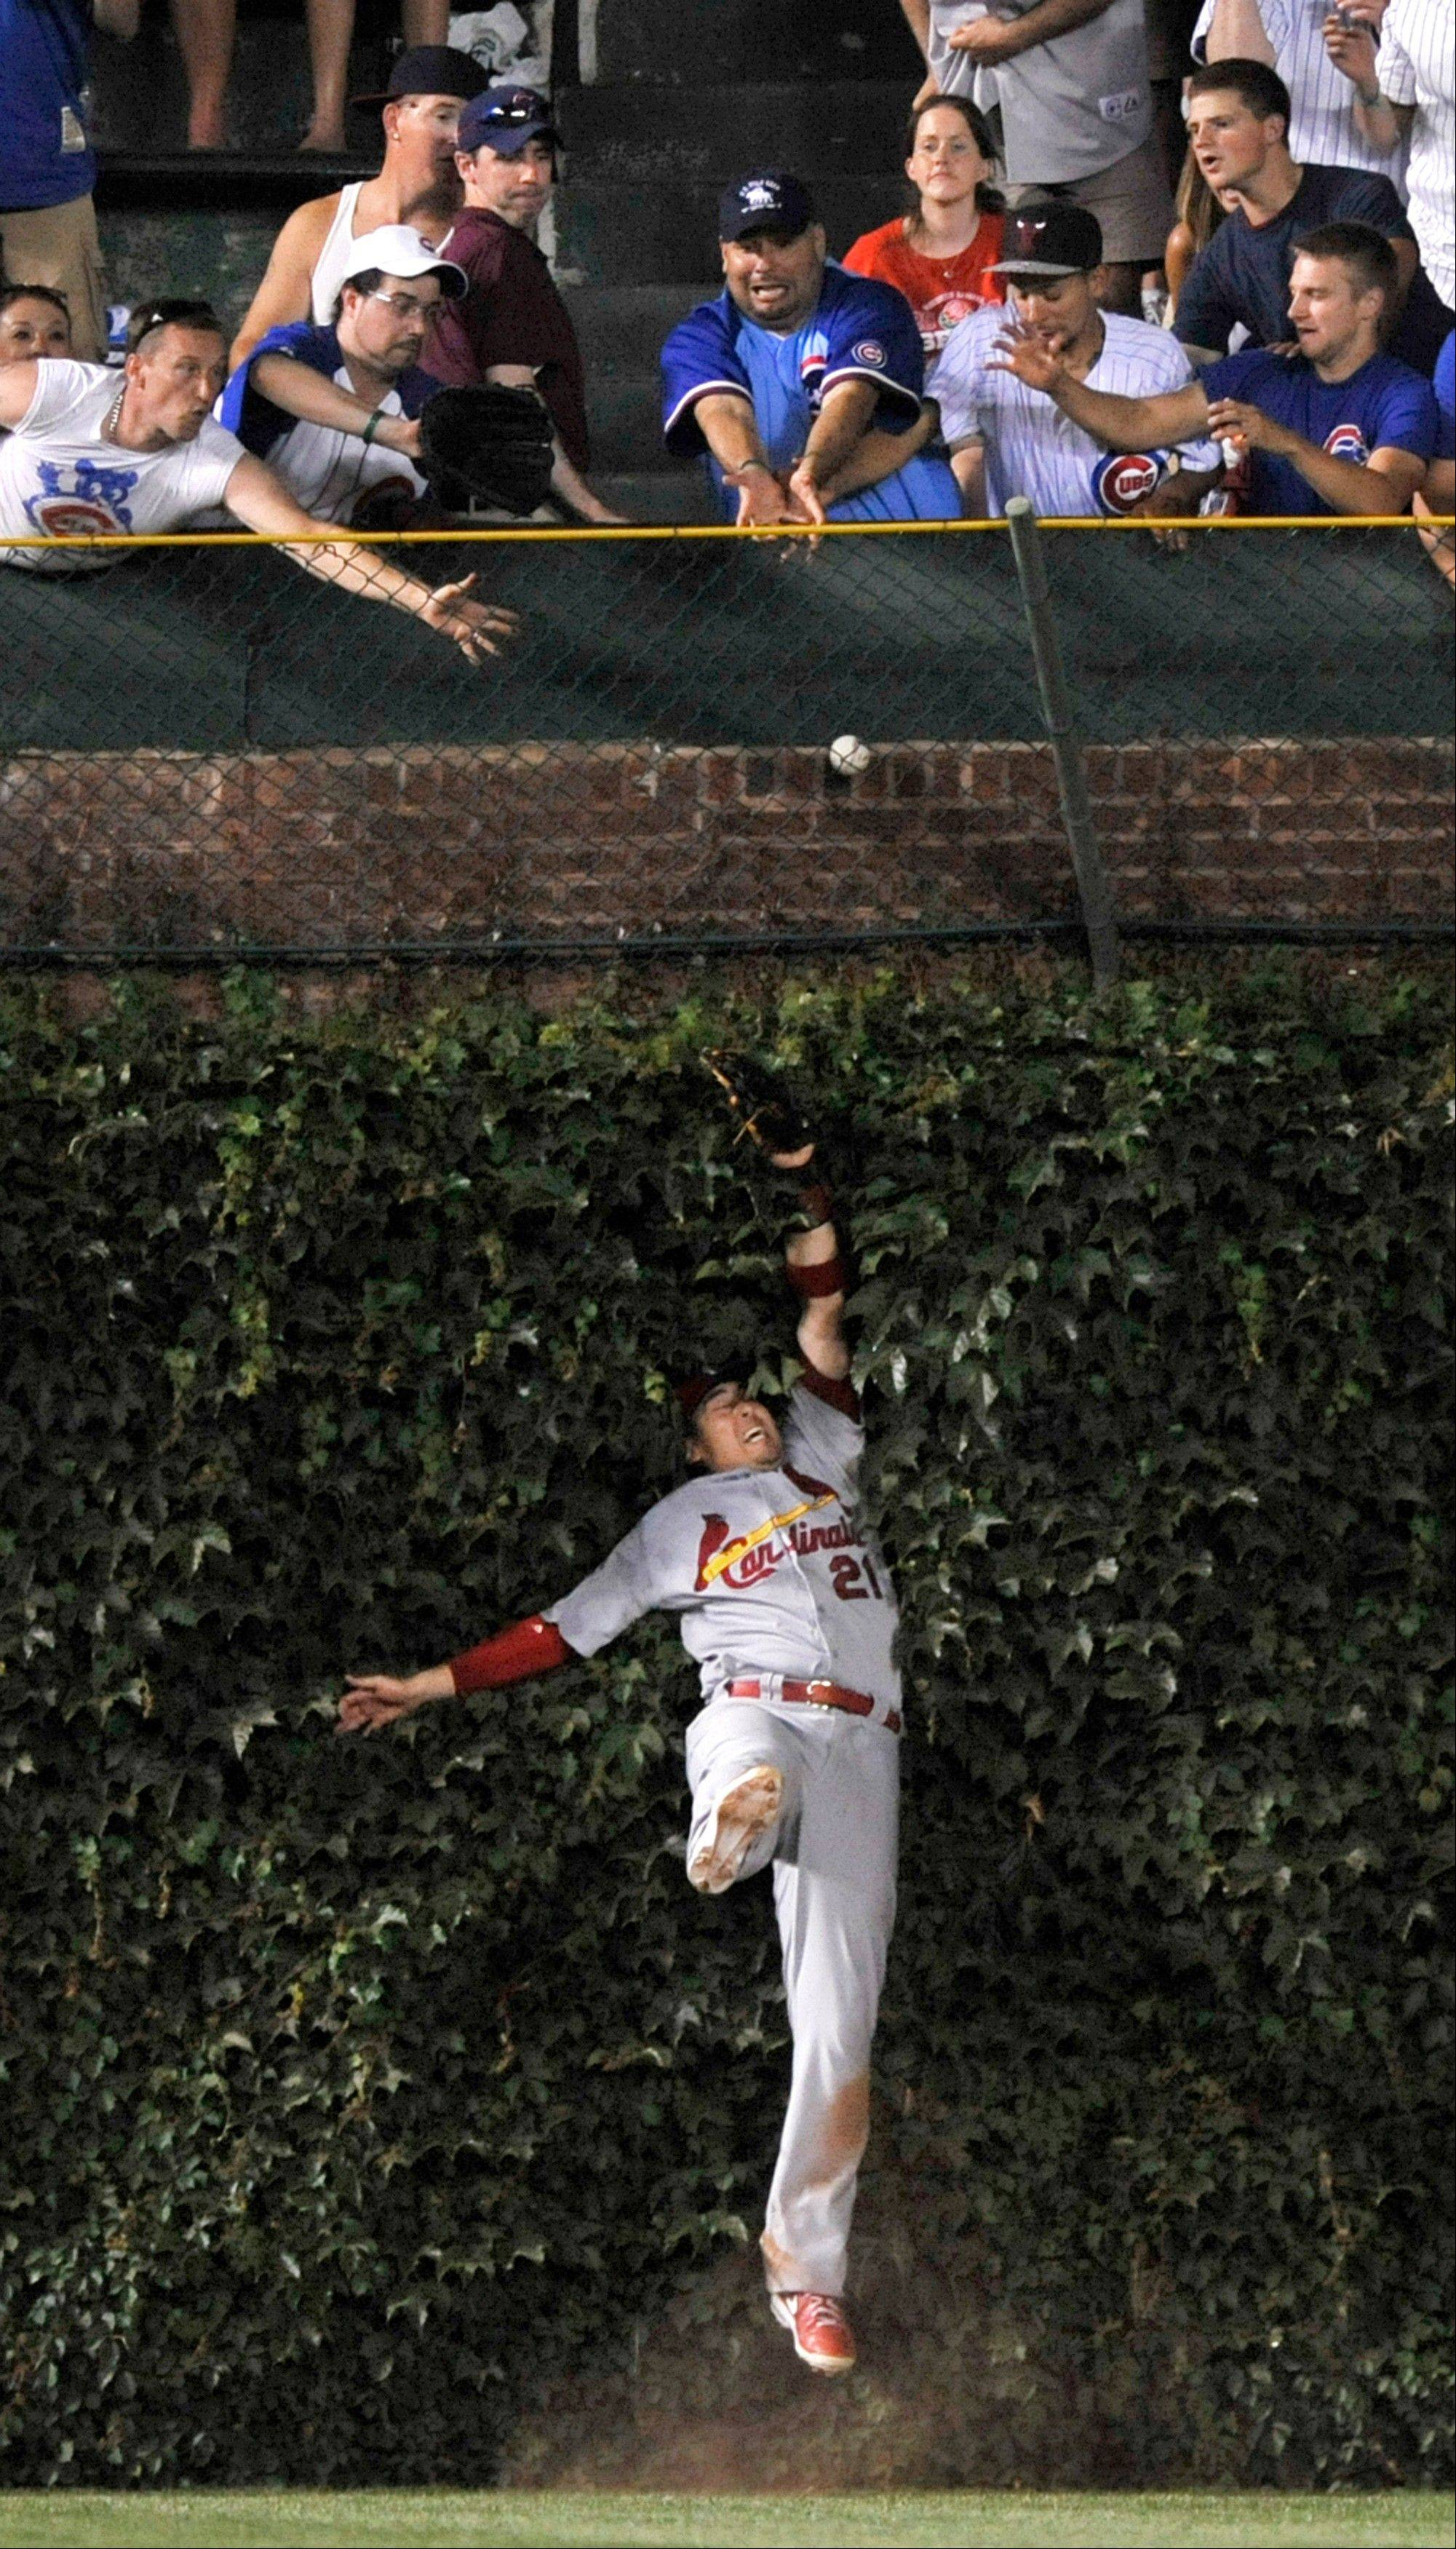 St. Louis Cardinals left fielder Allen Craig attempts to catch a three-run home run hit by the Cubs' Darwin Barney during the sixth inning of a baseball game in Chicago, Sunday, July 14, 2013.